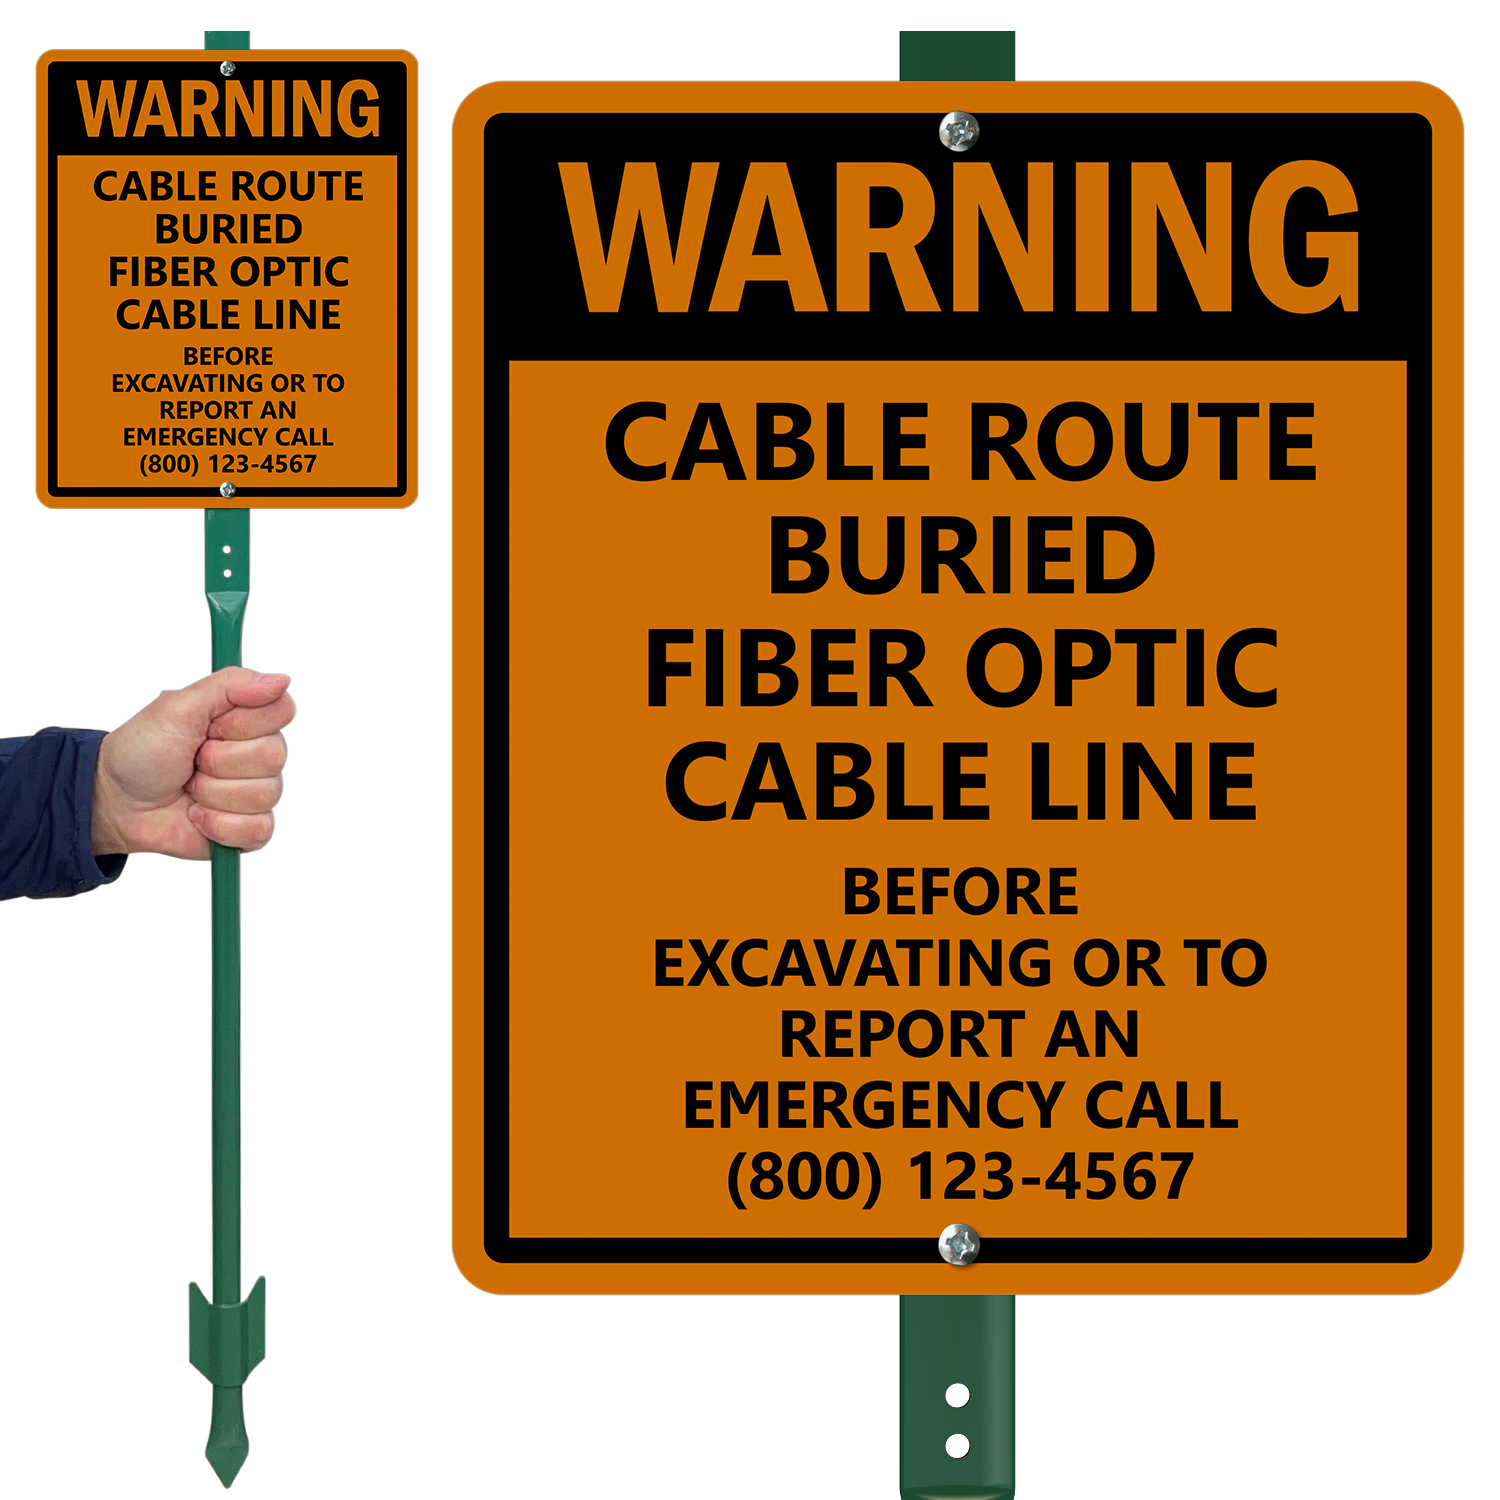 Buried Fiber Optic Cable Signs Fiber Optic Cable Signs